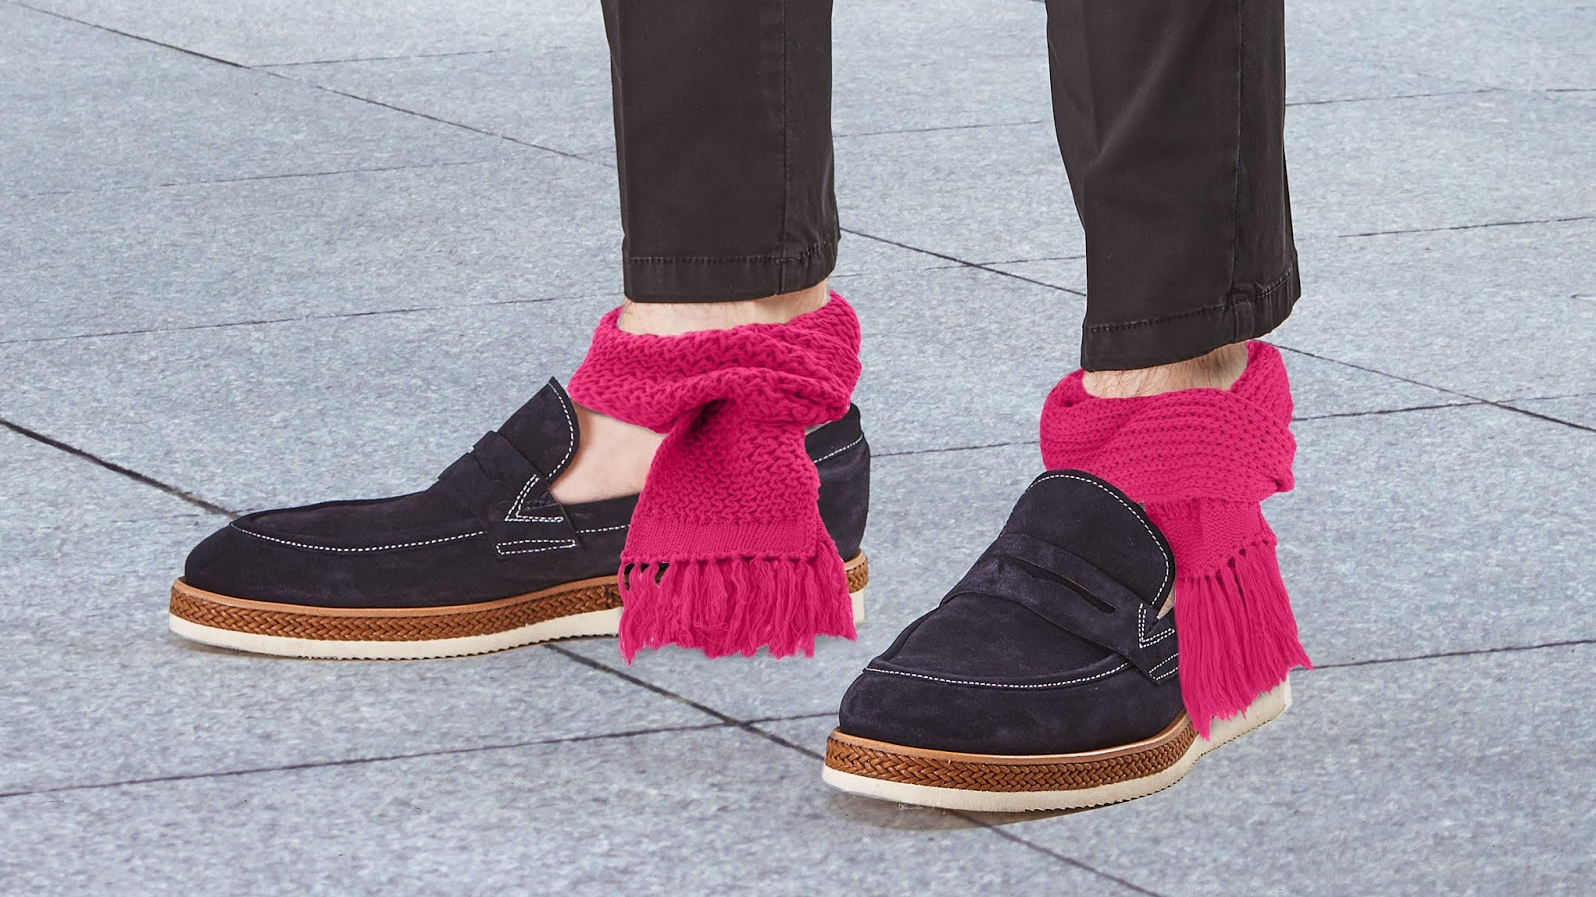 Ankle Scarves Are The Fake Trend Nobody Needed